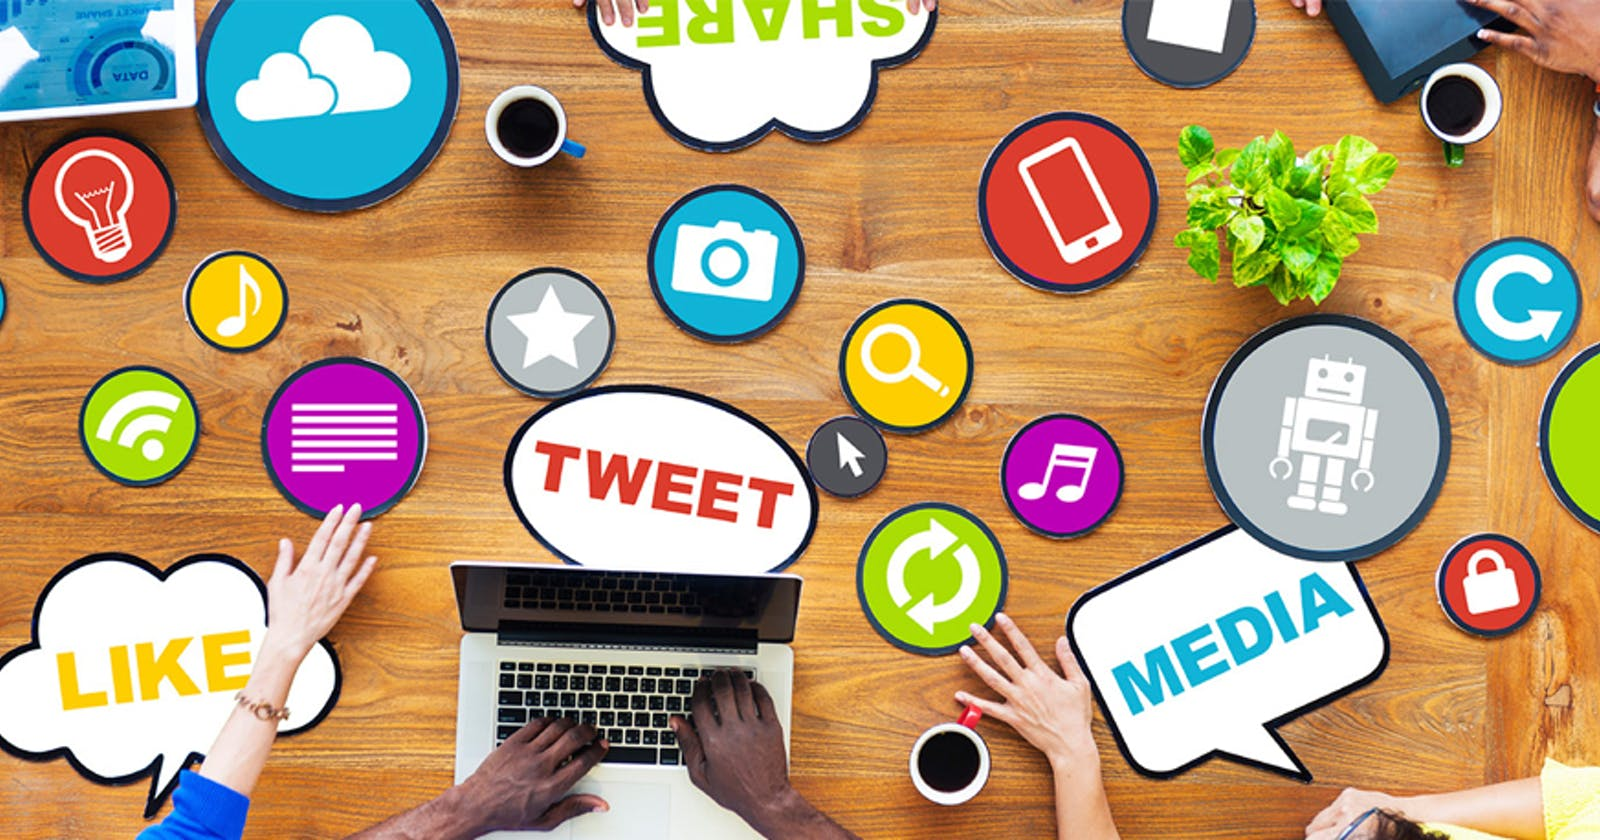 How to use Twitter to your advantage when starting out in Web Development